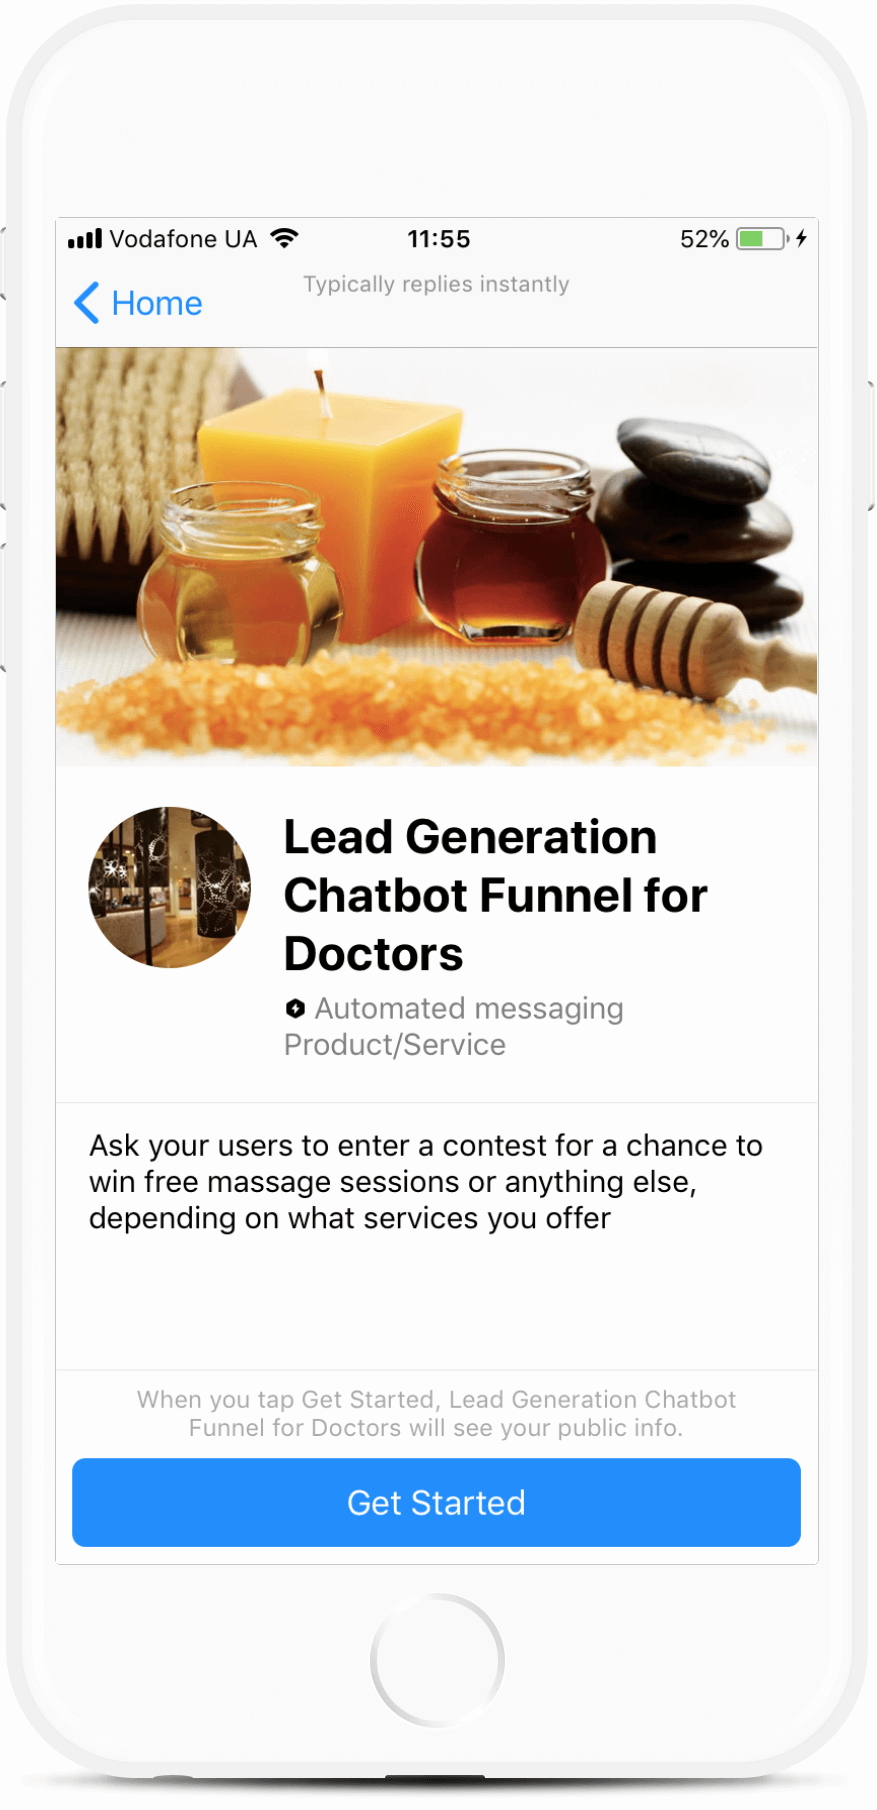 Lead Generation Chatbot Funnel for Doctors